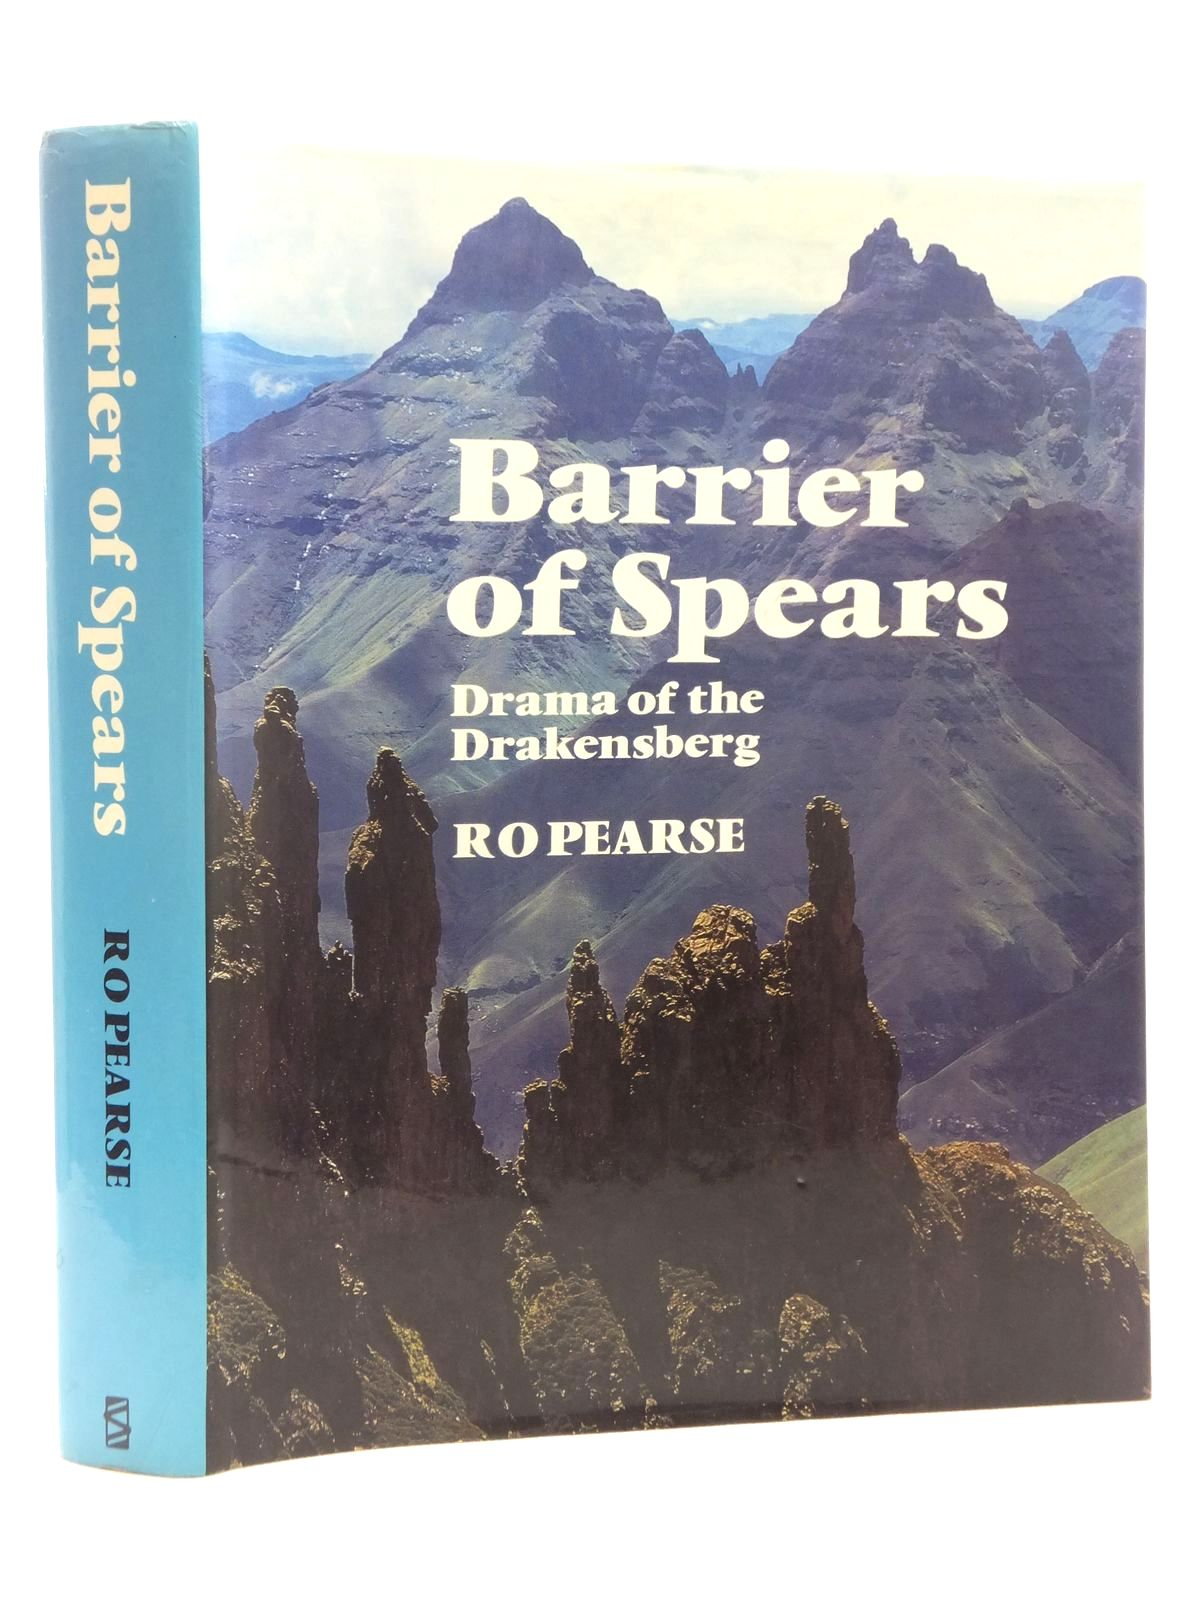 Photo of BARRIER OF SPEARS DRAMA OF THE DRAKENSBERG written by Pearse, Ro published by Southern Book Publishers (STOCK CODE: 1609926)  for sale by Stella & Rose's Books